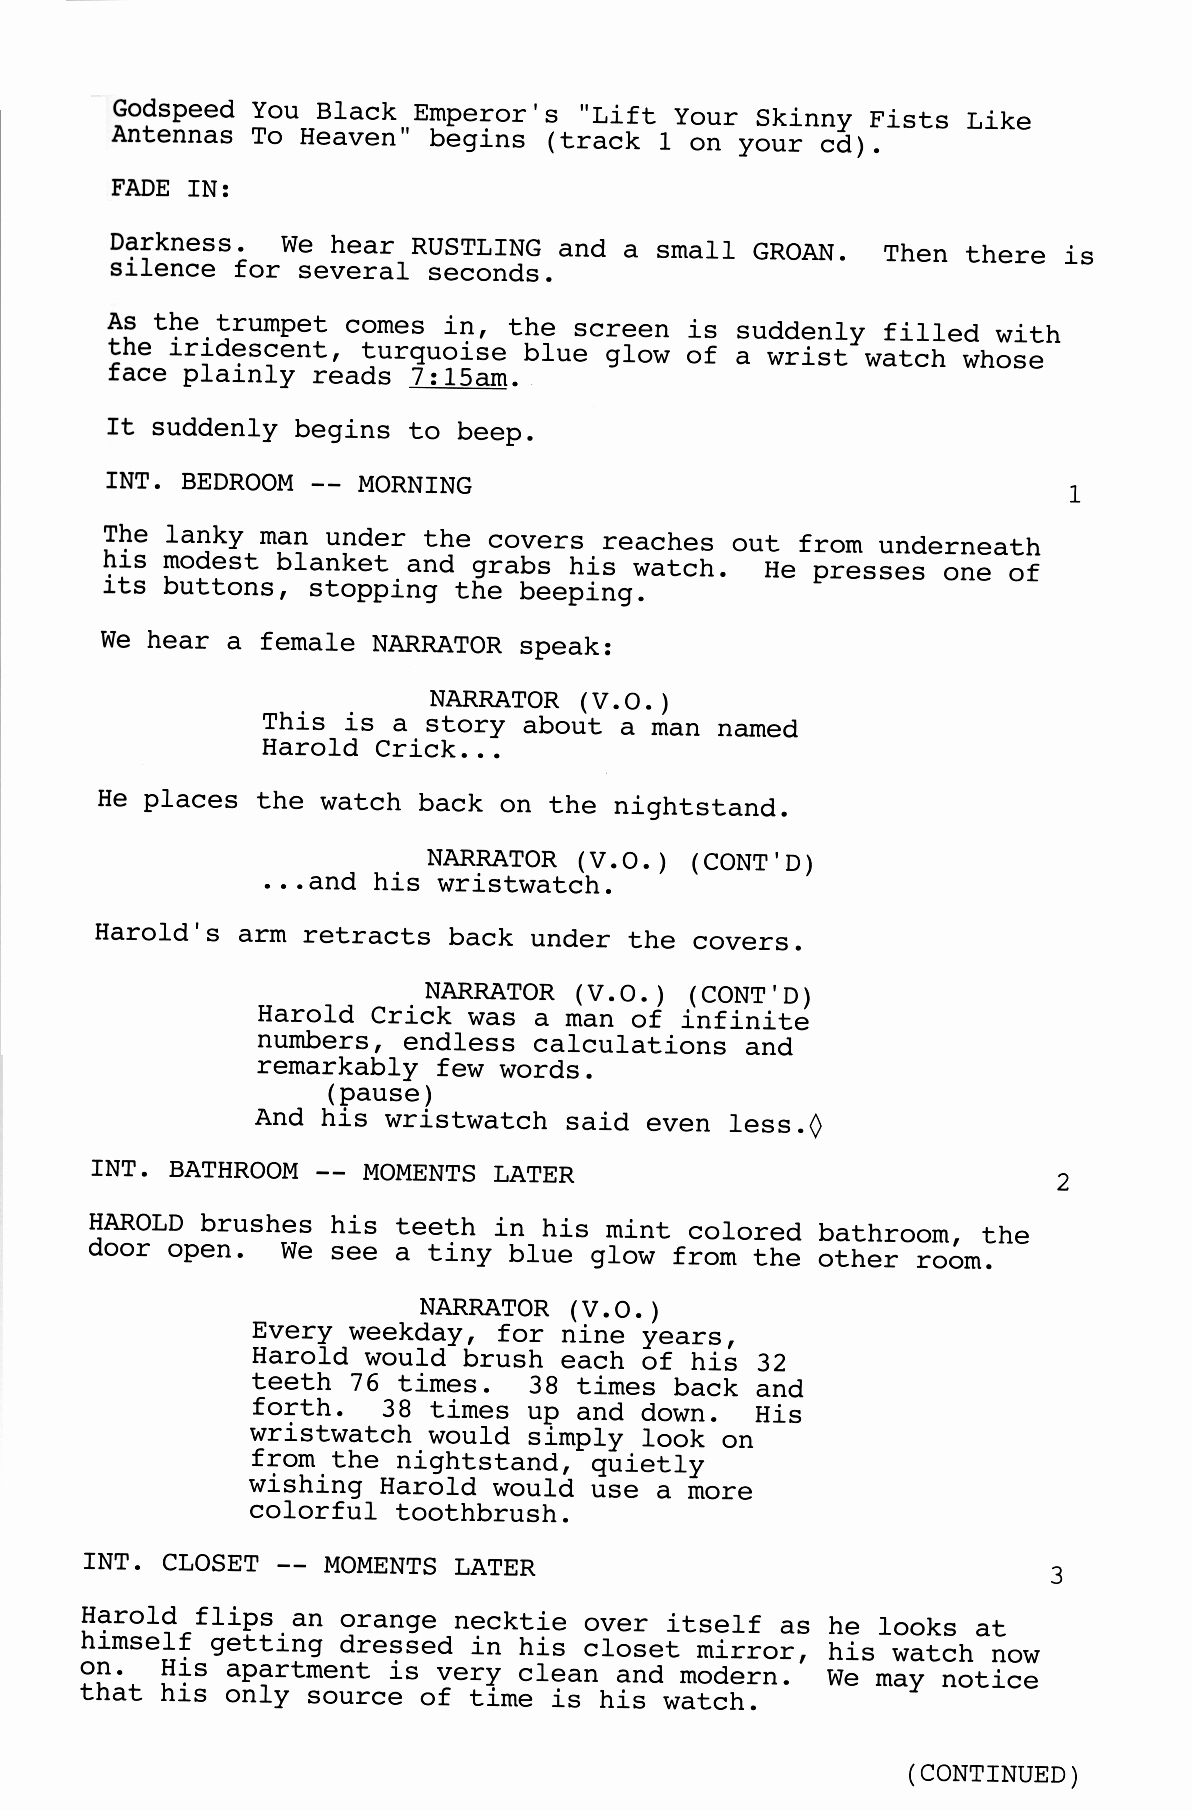 Short Film Script Template Awesome there Will Be Other Items In the Script but these are the